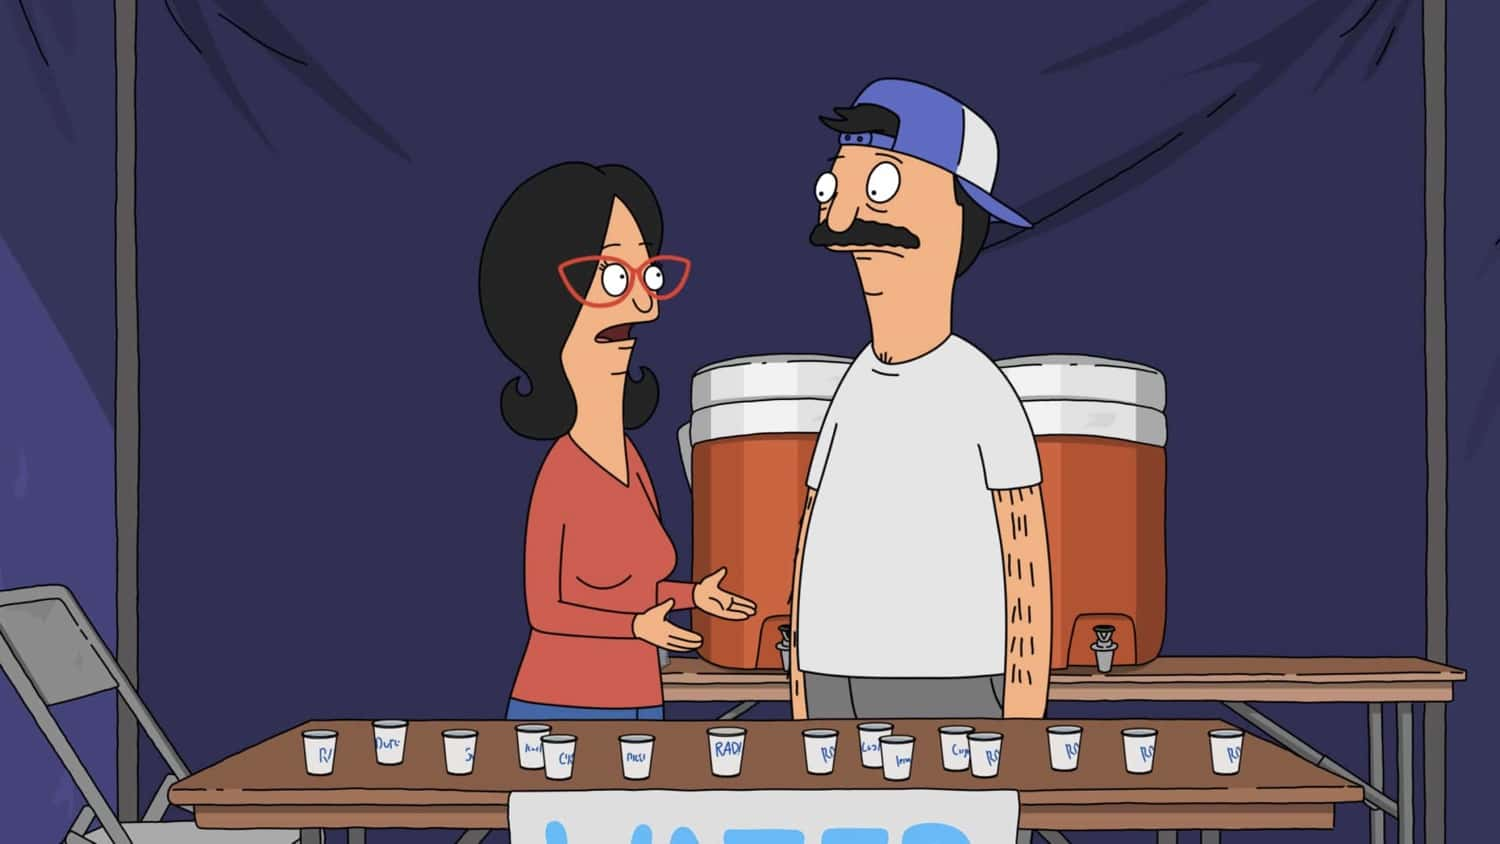 """BOB'S BURGERS Season 11 Episode 16 : When Tina is forced to listen to Spanish audio lessons in the library to improve her grade, she develops an unexpected crush. Meanwhile, Louise and Gene want to dunk Mr. Frond at the Wagstaff Spring Fair in the """"Y Tu Tina También"""" episode of BOB'S BURGERS airing Sunday, March 28 (9:00-9:30 PM ET/PT) on FOX. BOB'S BURGERS © 2021 by 20th Television."""